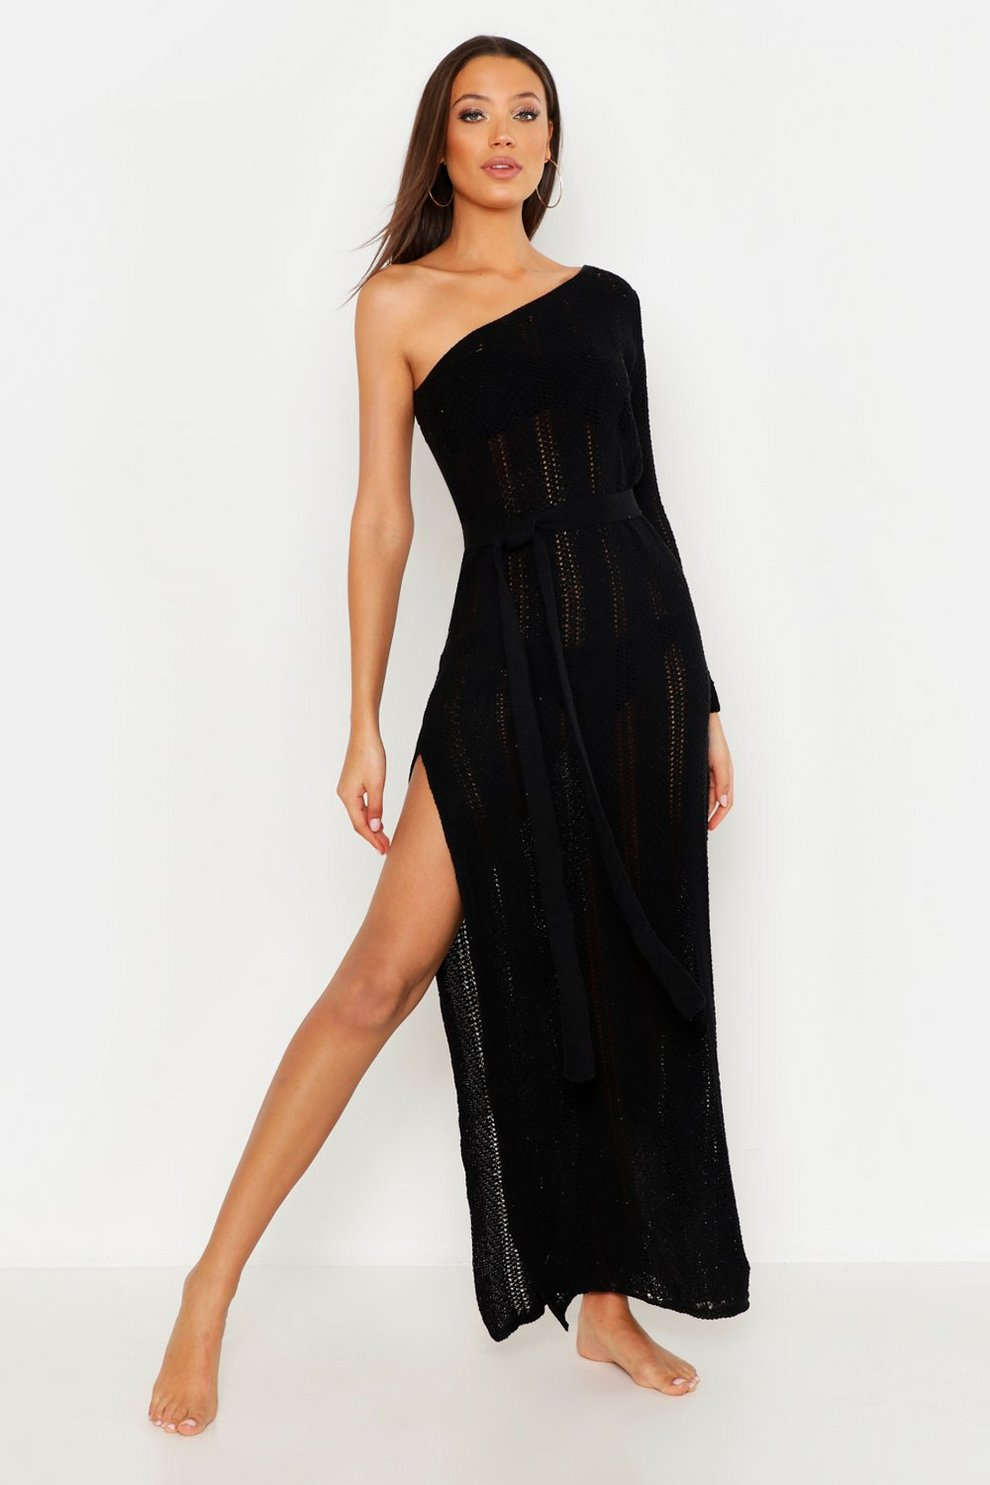 8789c7255b6f Womens Black Tall One Shoulder Knitted Beach Dress. Hover to zoom